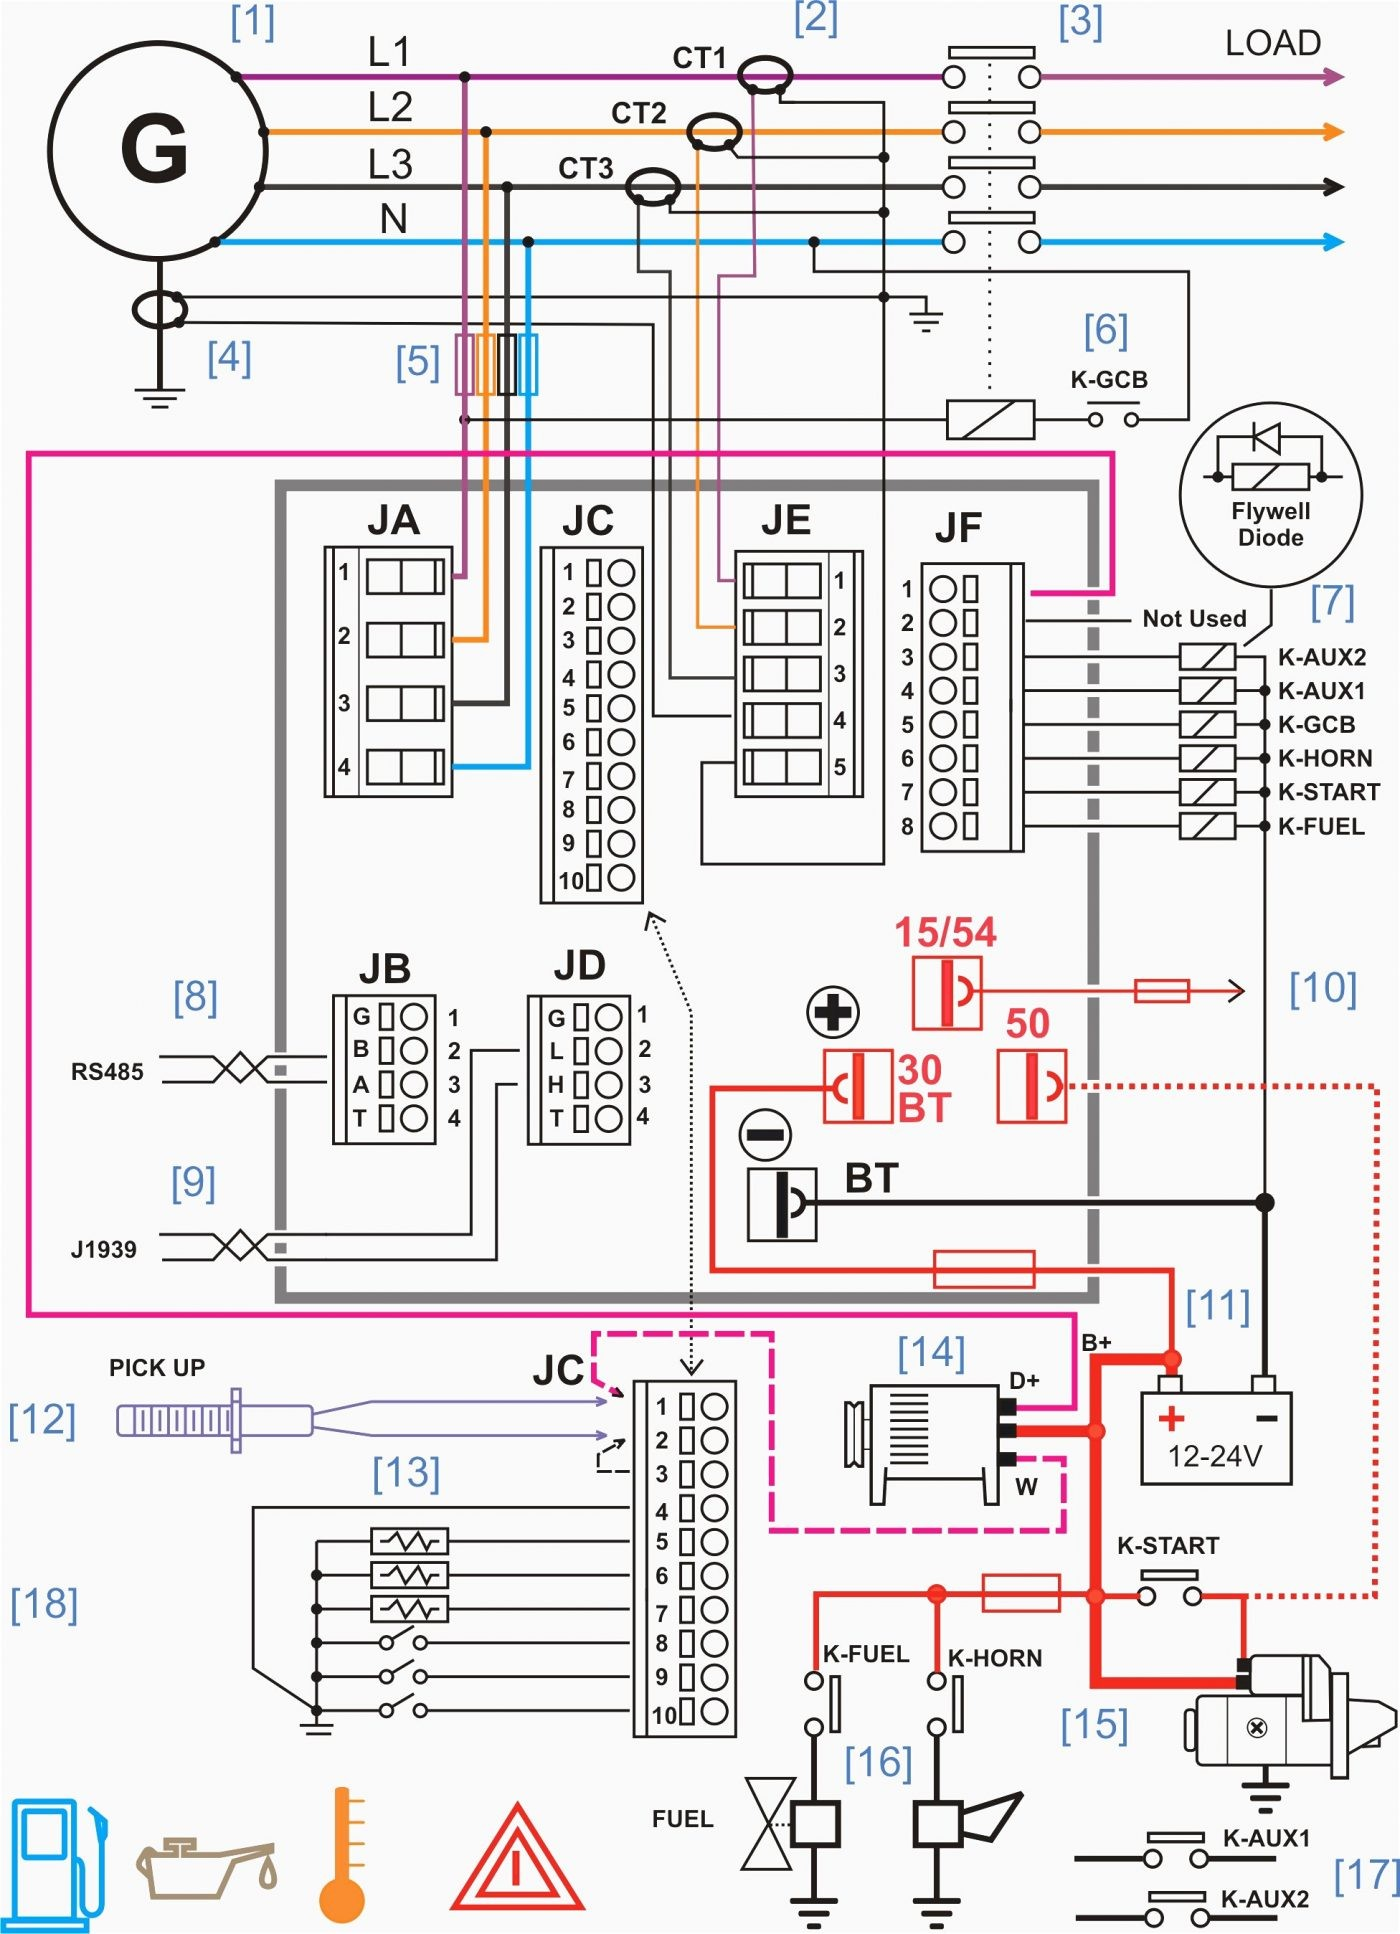 2006 Dodge Charger Engine Diagram 1934 Dodge Wiring Diagrams Wiring Diagram  Of 2006 Dodge Charger Engine